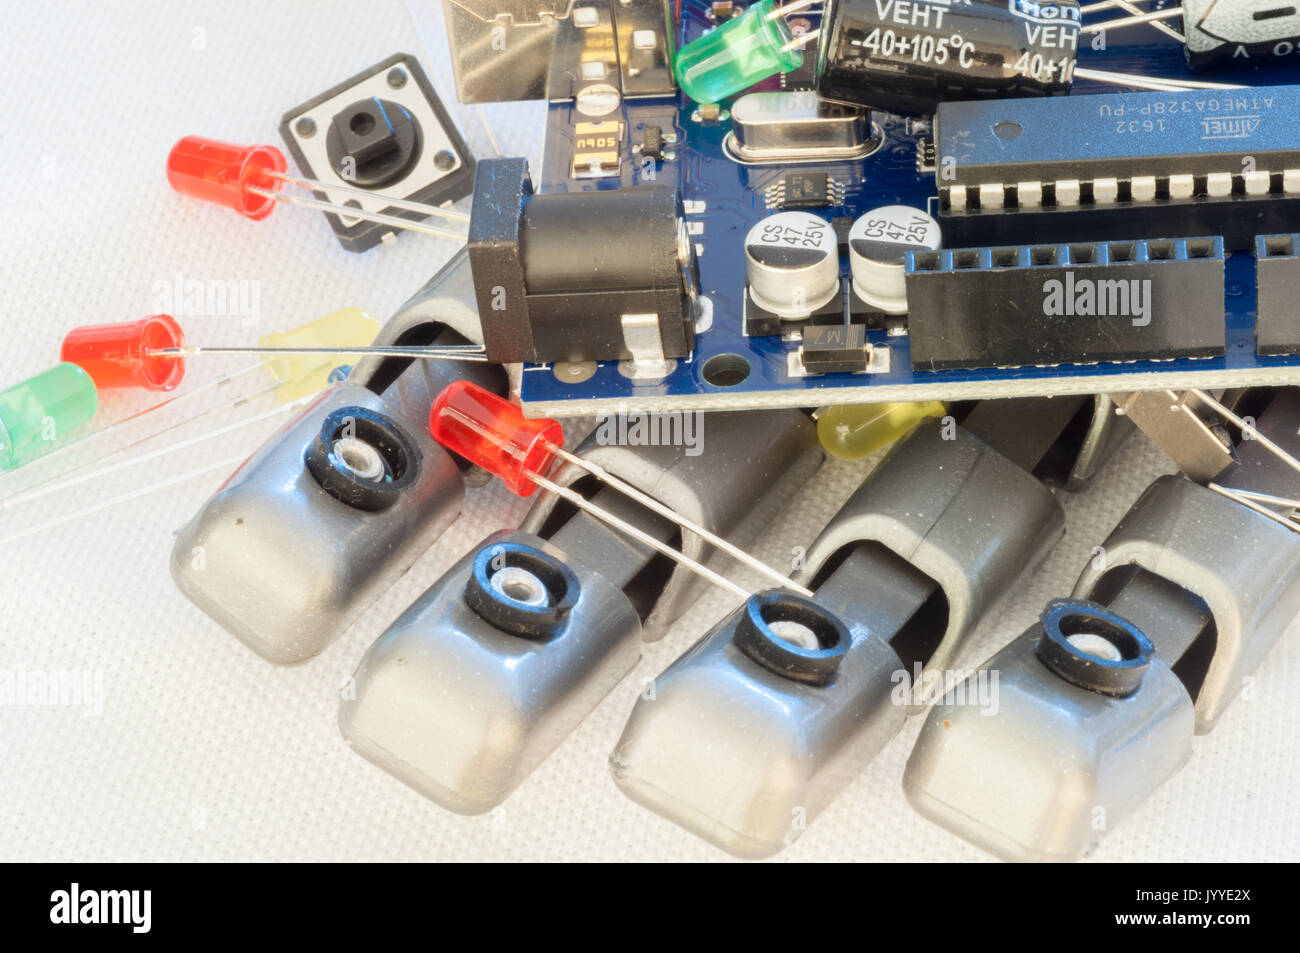 Beautiful Raw Macro Robotics Background Stock Photo 154882418 Alamy